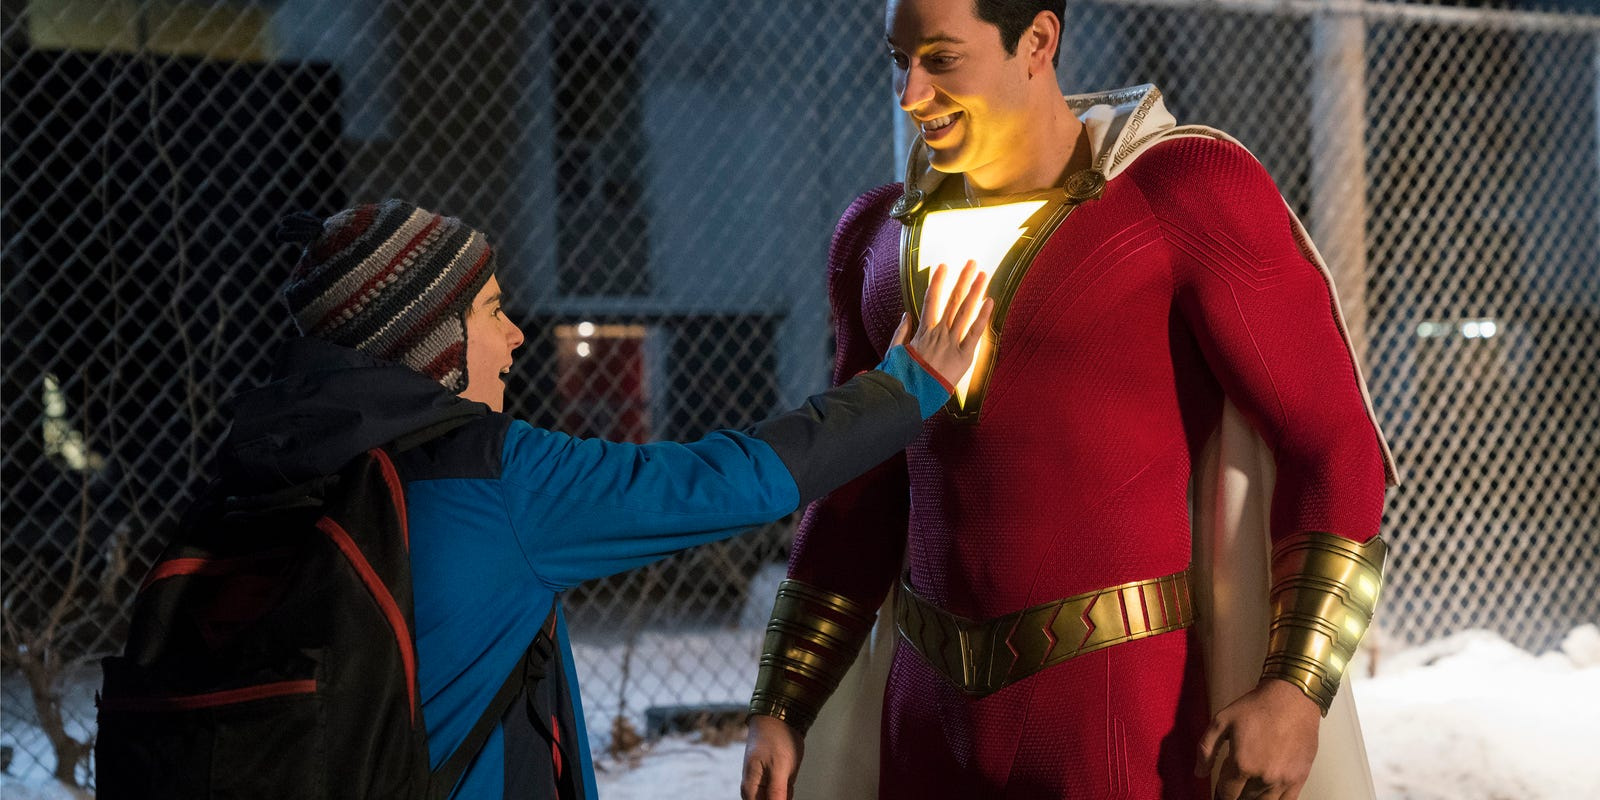 'Shazam' turns a foster boy into a caped crusader